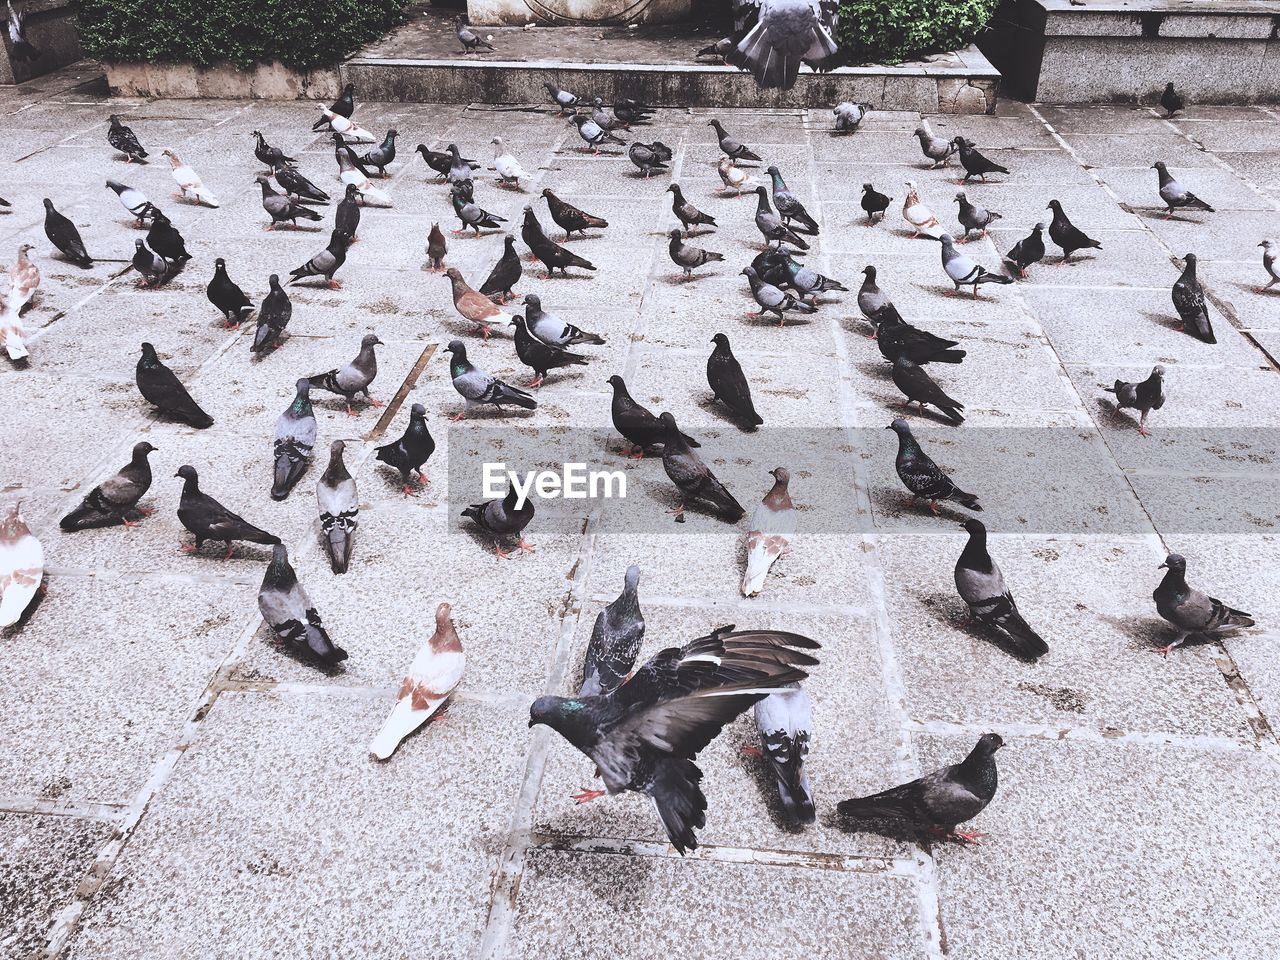 large group of animals, animal themes, group of animals, animal wildlife, animal, animals in the wild, vertebrate, bird, pigeon, high angle view, flock of birds, day, nature, flying, no people, outdoors, feeding, street, footpath, city, flapping